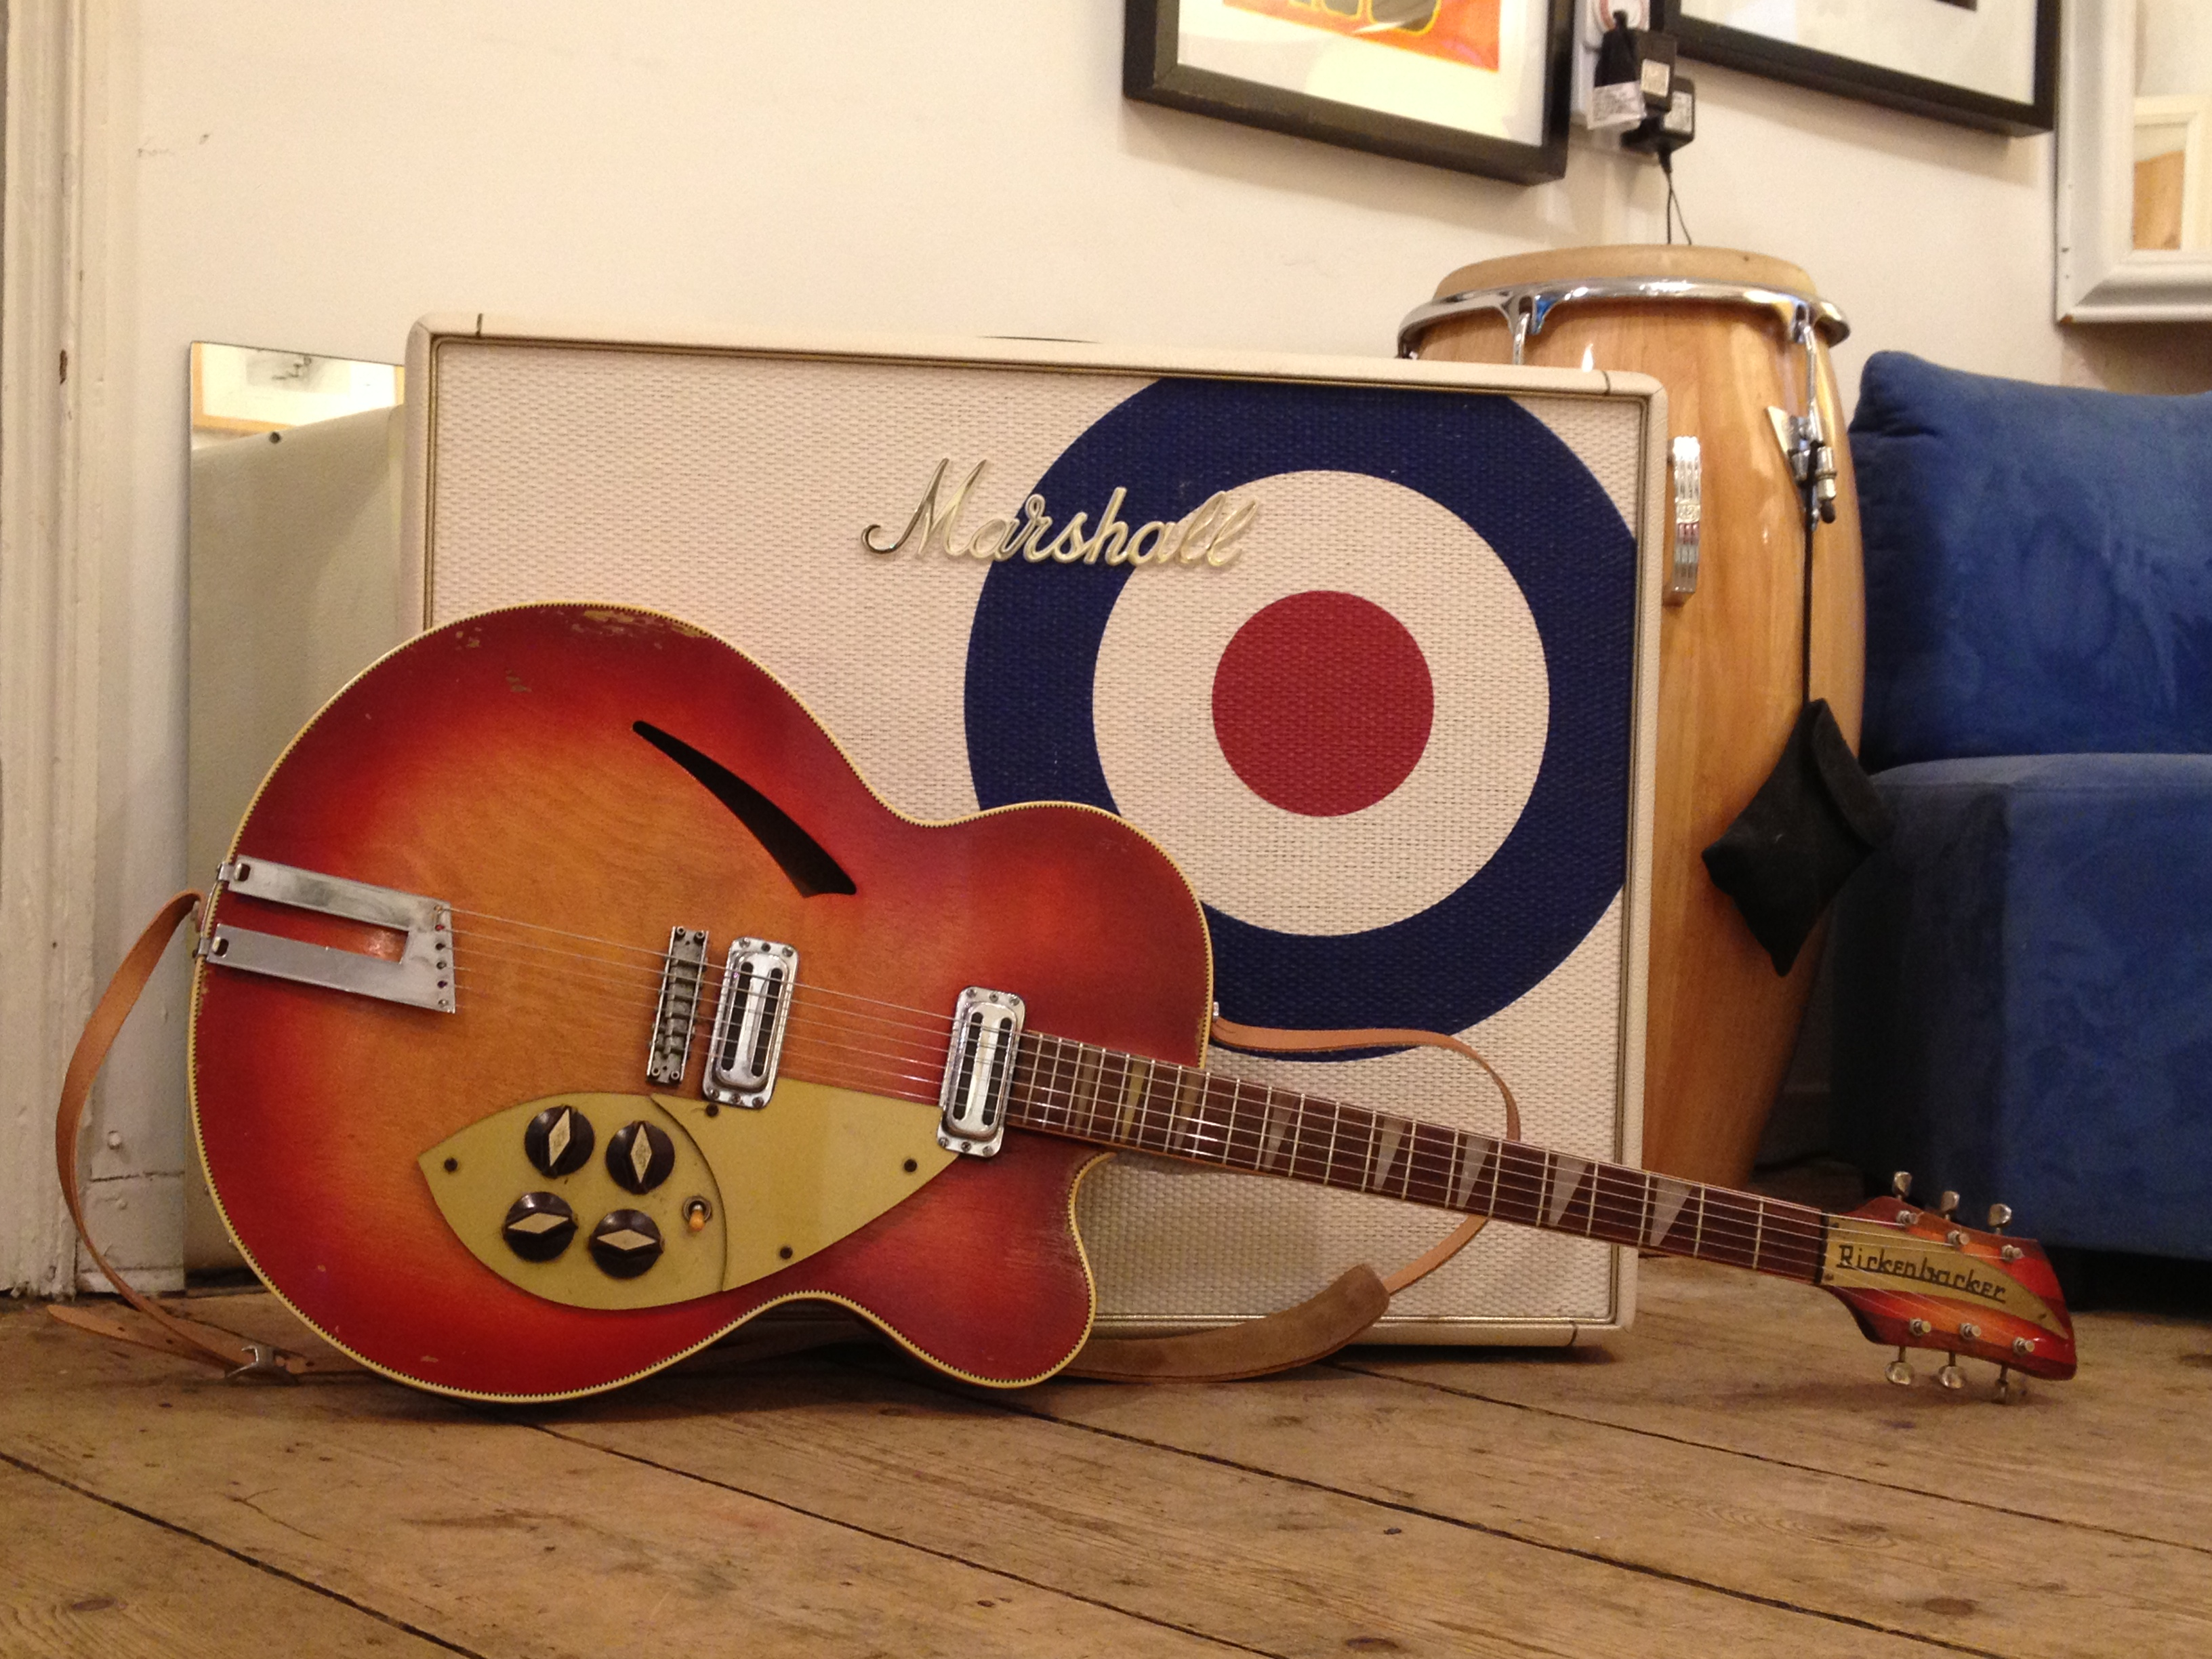 marshall paul weller lead & bass 50 watt limited edition #24/50<br>here is one of only 50 made marshall amps to celebrate paul weller 50th birthday...